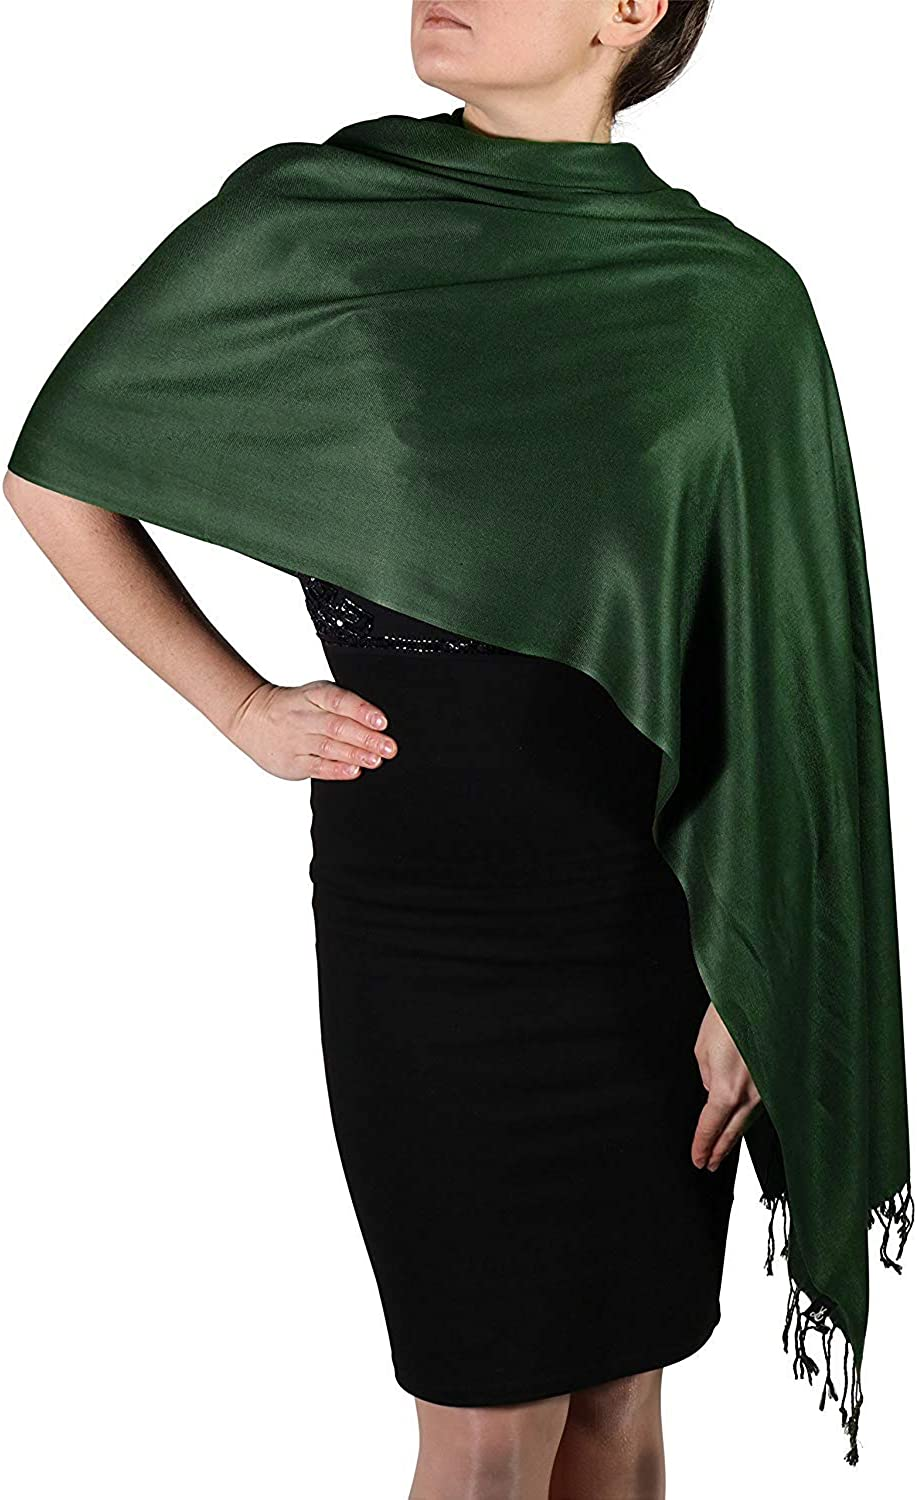 TMS Large Soft Silky Pashmina Scarf For Women Cashmere Scarves Stylish Warm Blanket Solid Winter Shawl Wrap Hijab